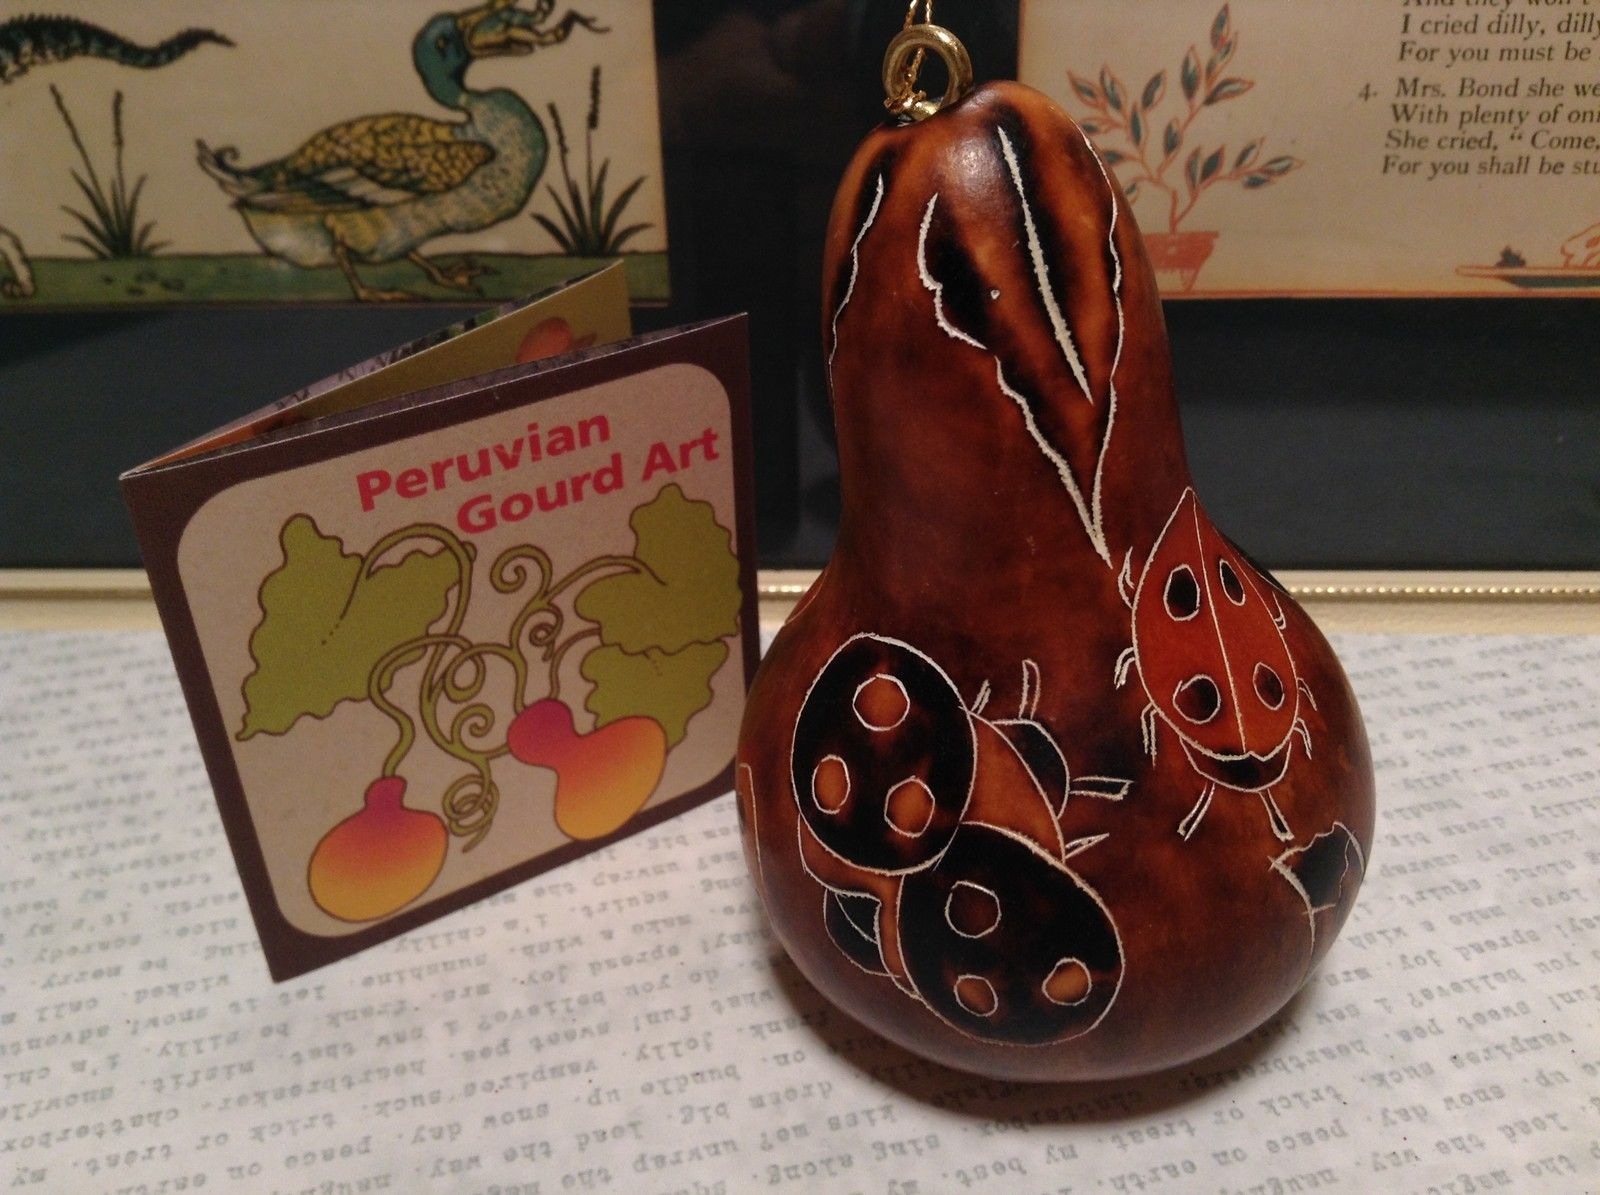 Hand Carved Art Ornament Peruvian Gourd with Ladybugs and Mushrooms Fair Trade